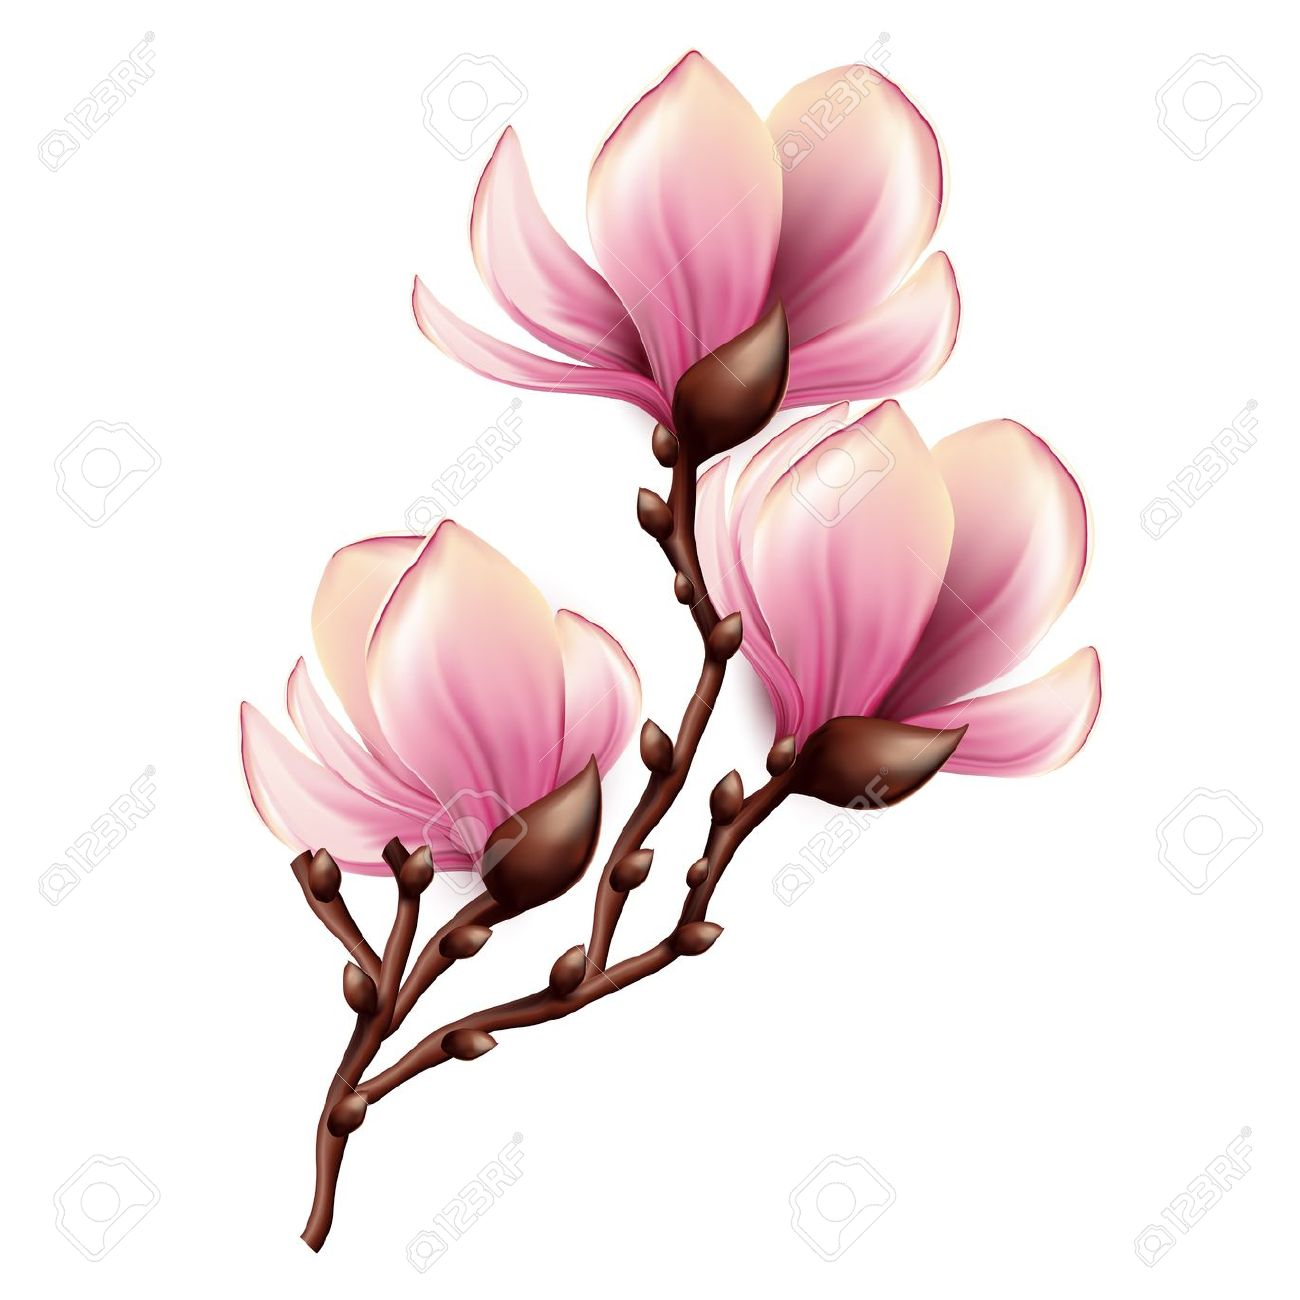 Magnolia Blossom clipart #7, Download drawings